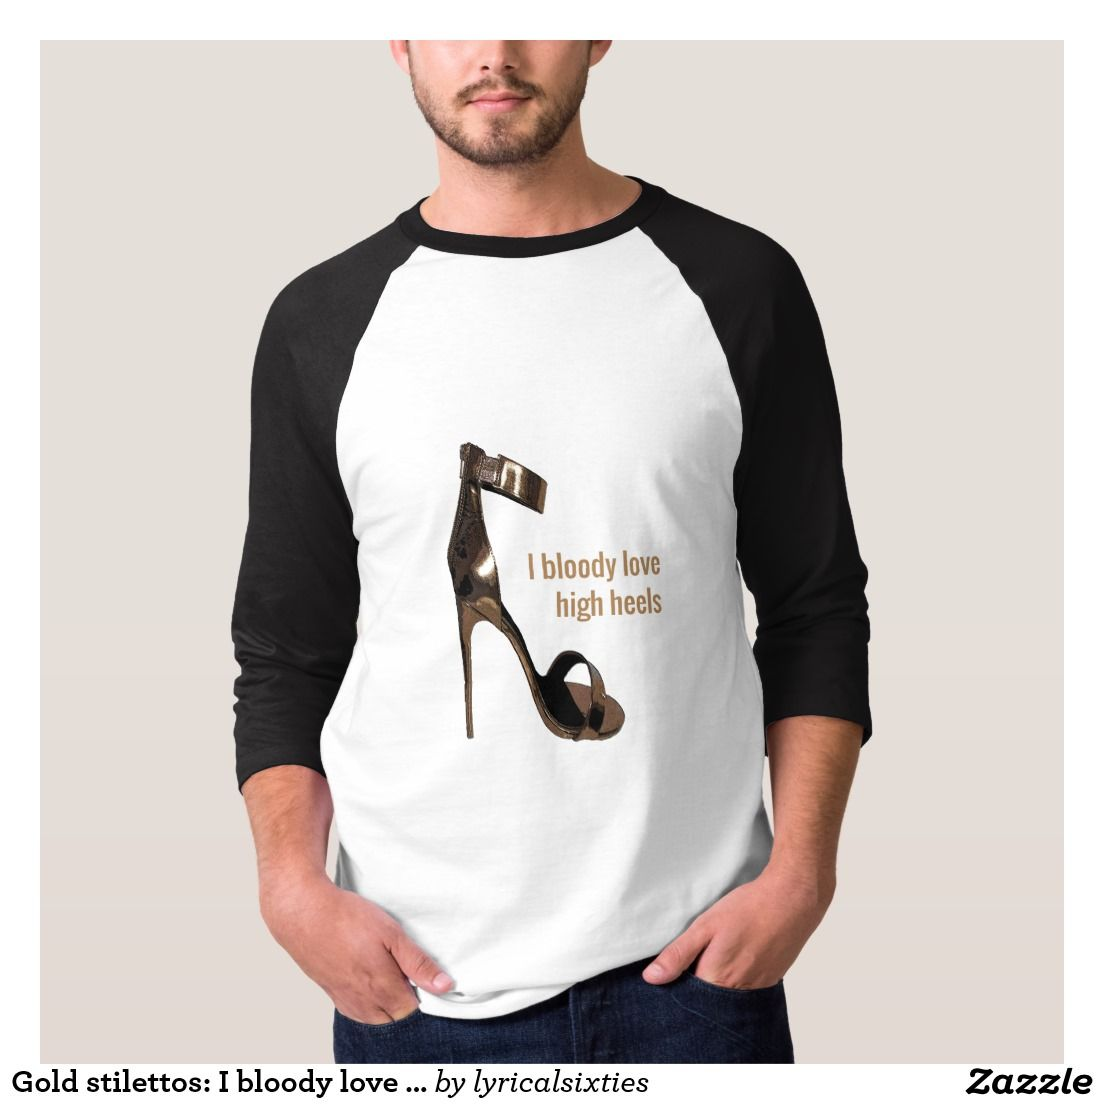 Create your own designs amp sell your design online shirts zazzle - Gold Stilettos I Bloody Love High Heels For Men T Shirt Designed For